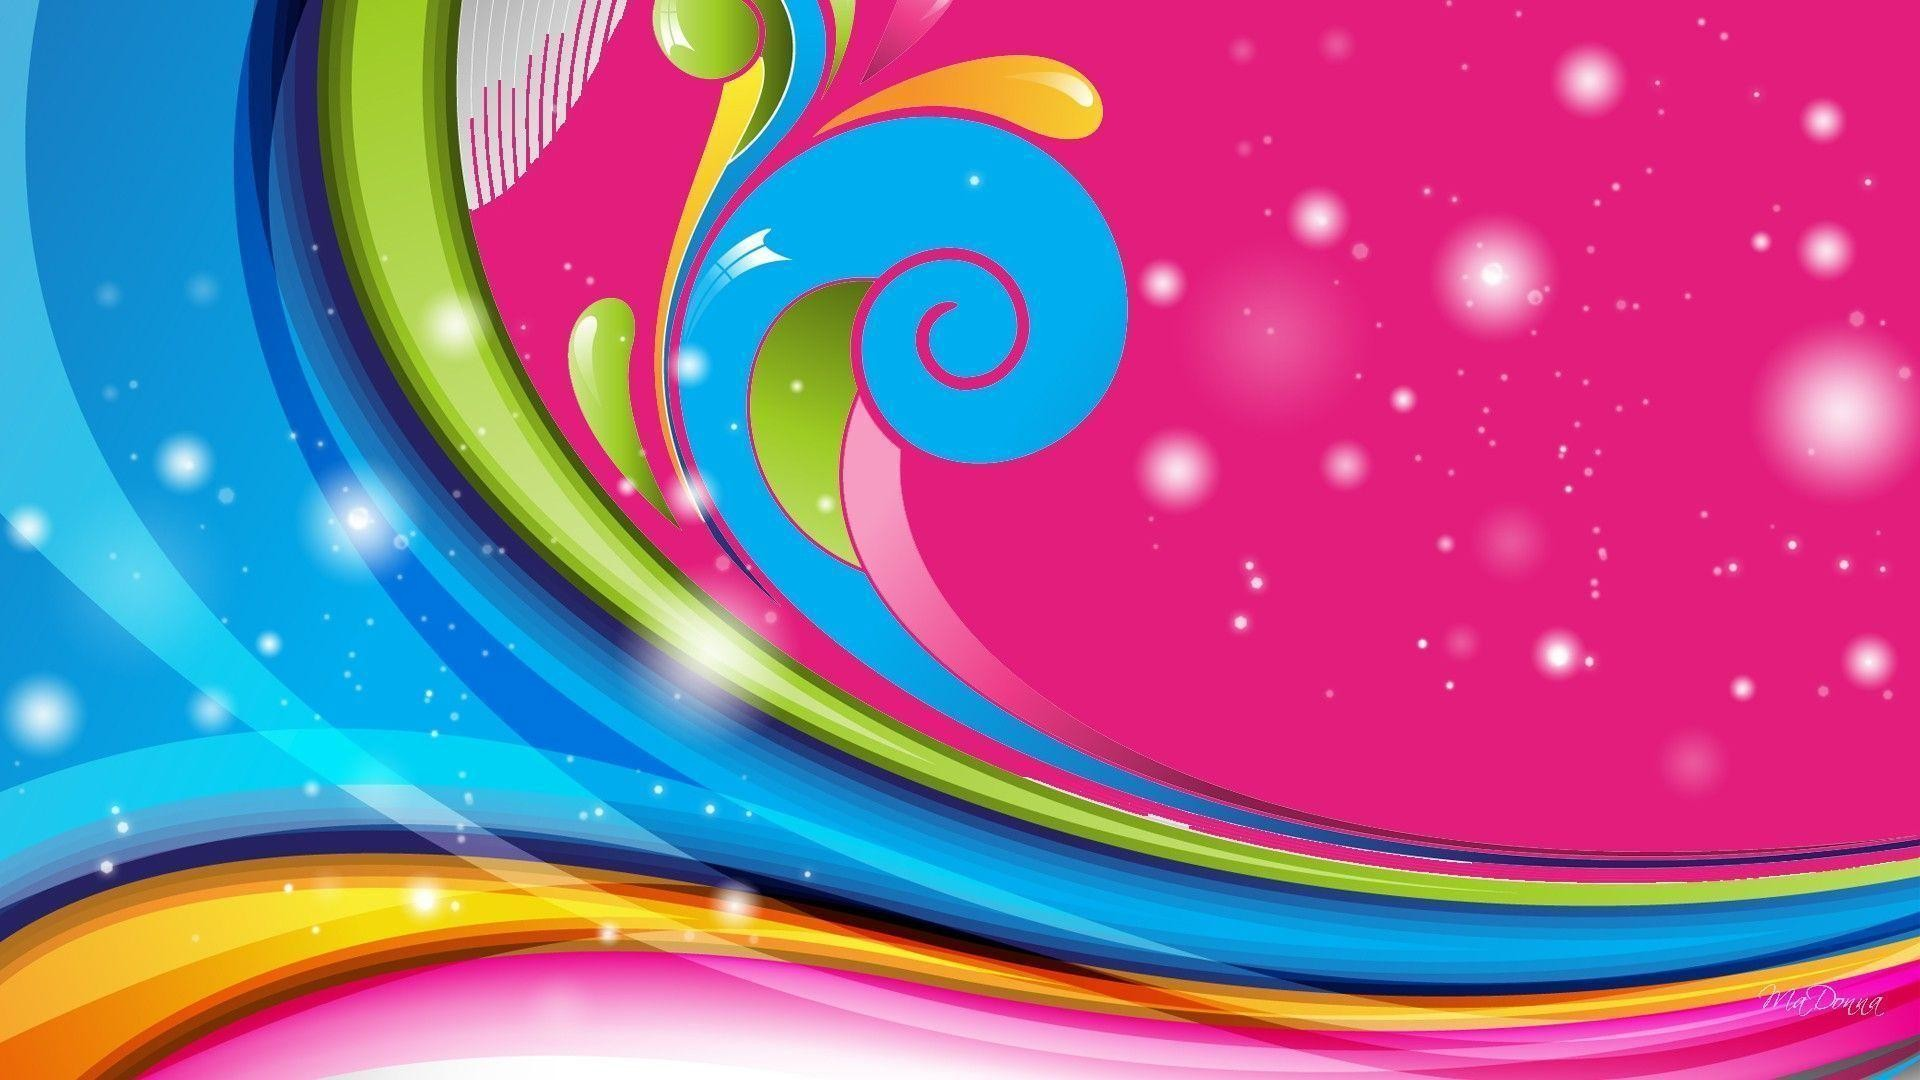 colorful rainbow colors wallpapers – DriverLayer Search Engine